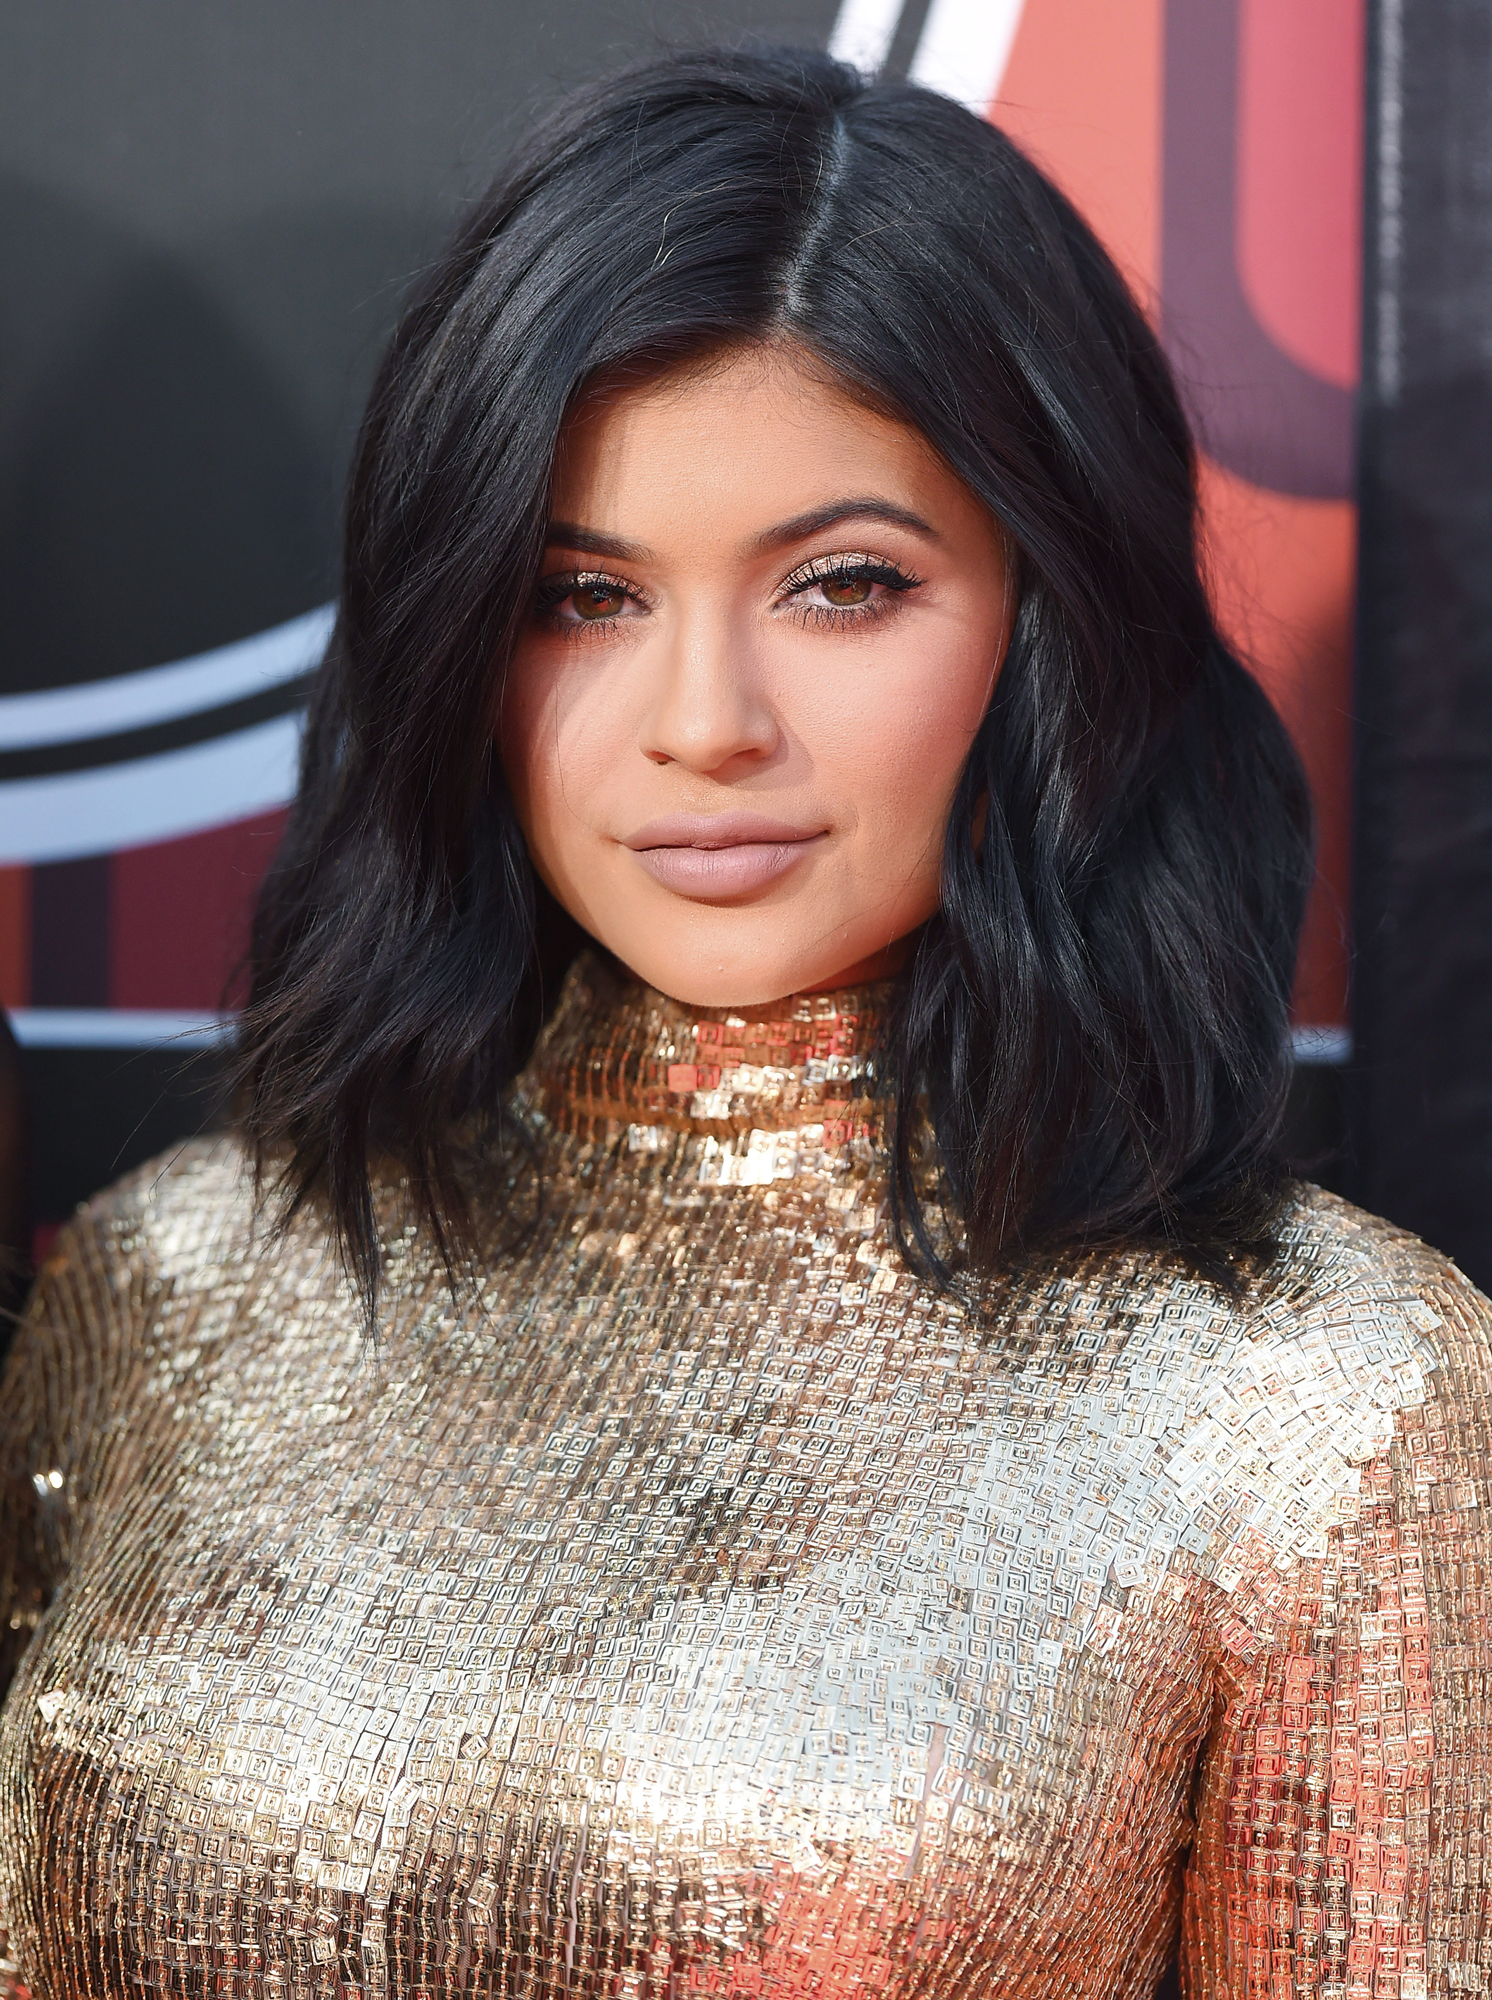 TV personality Kylie Jenner arrives at The 2015 ESPYS at Microsoft Theater on July 15, 2015 in Los Angeles, California.